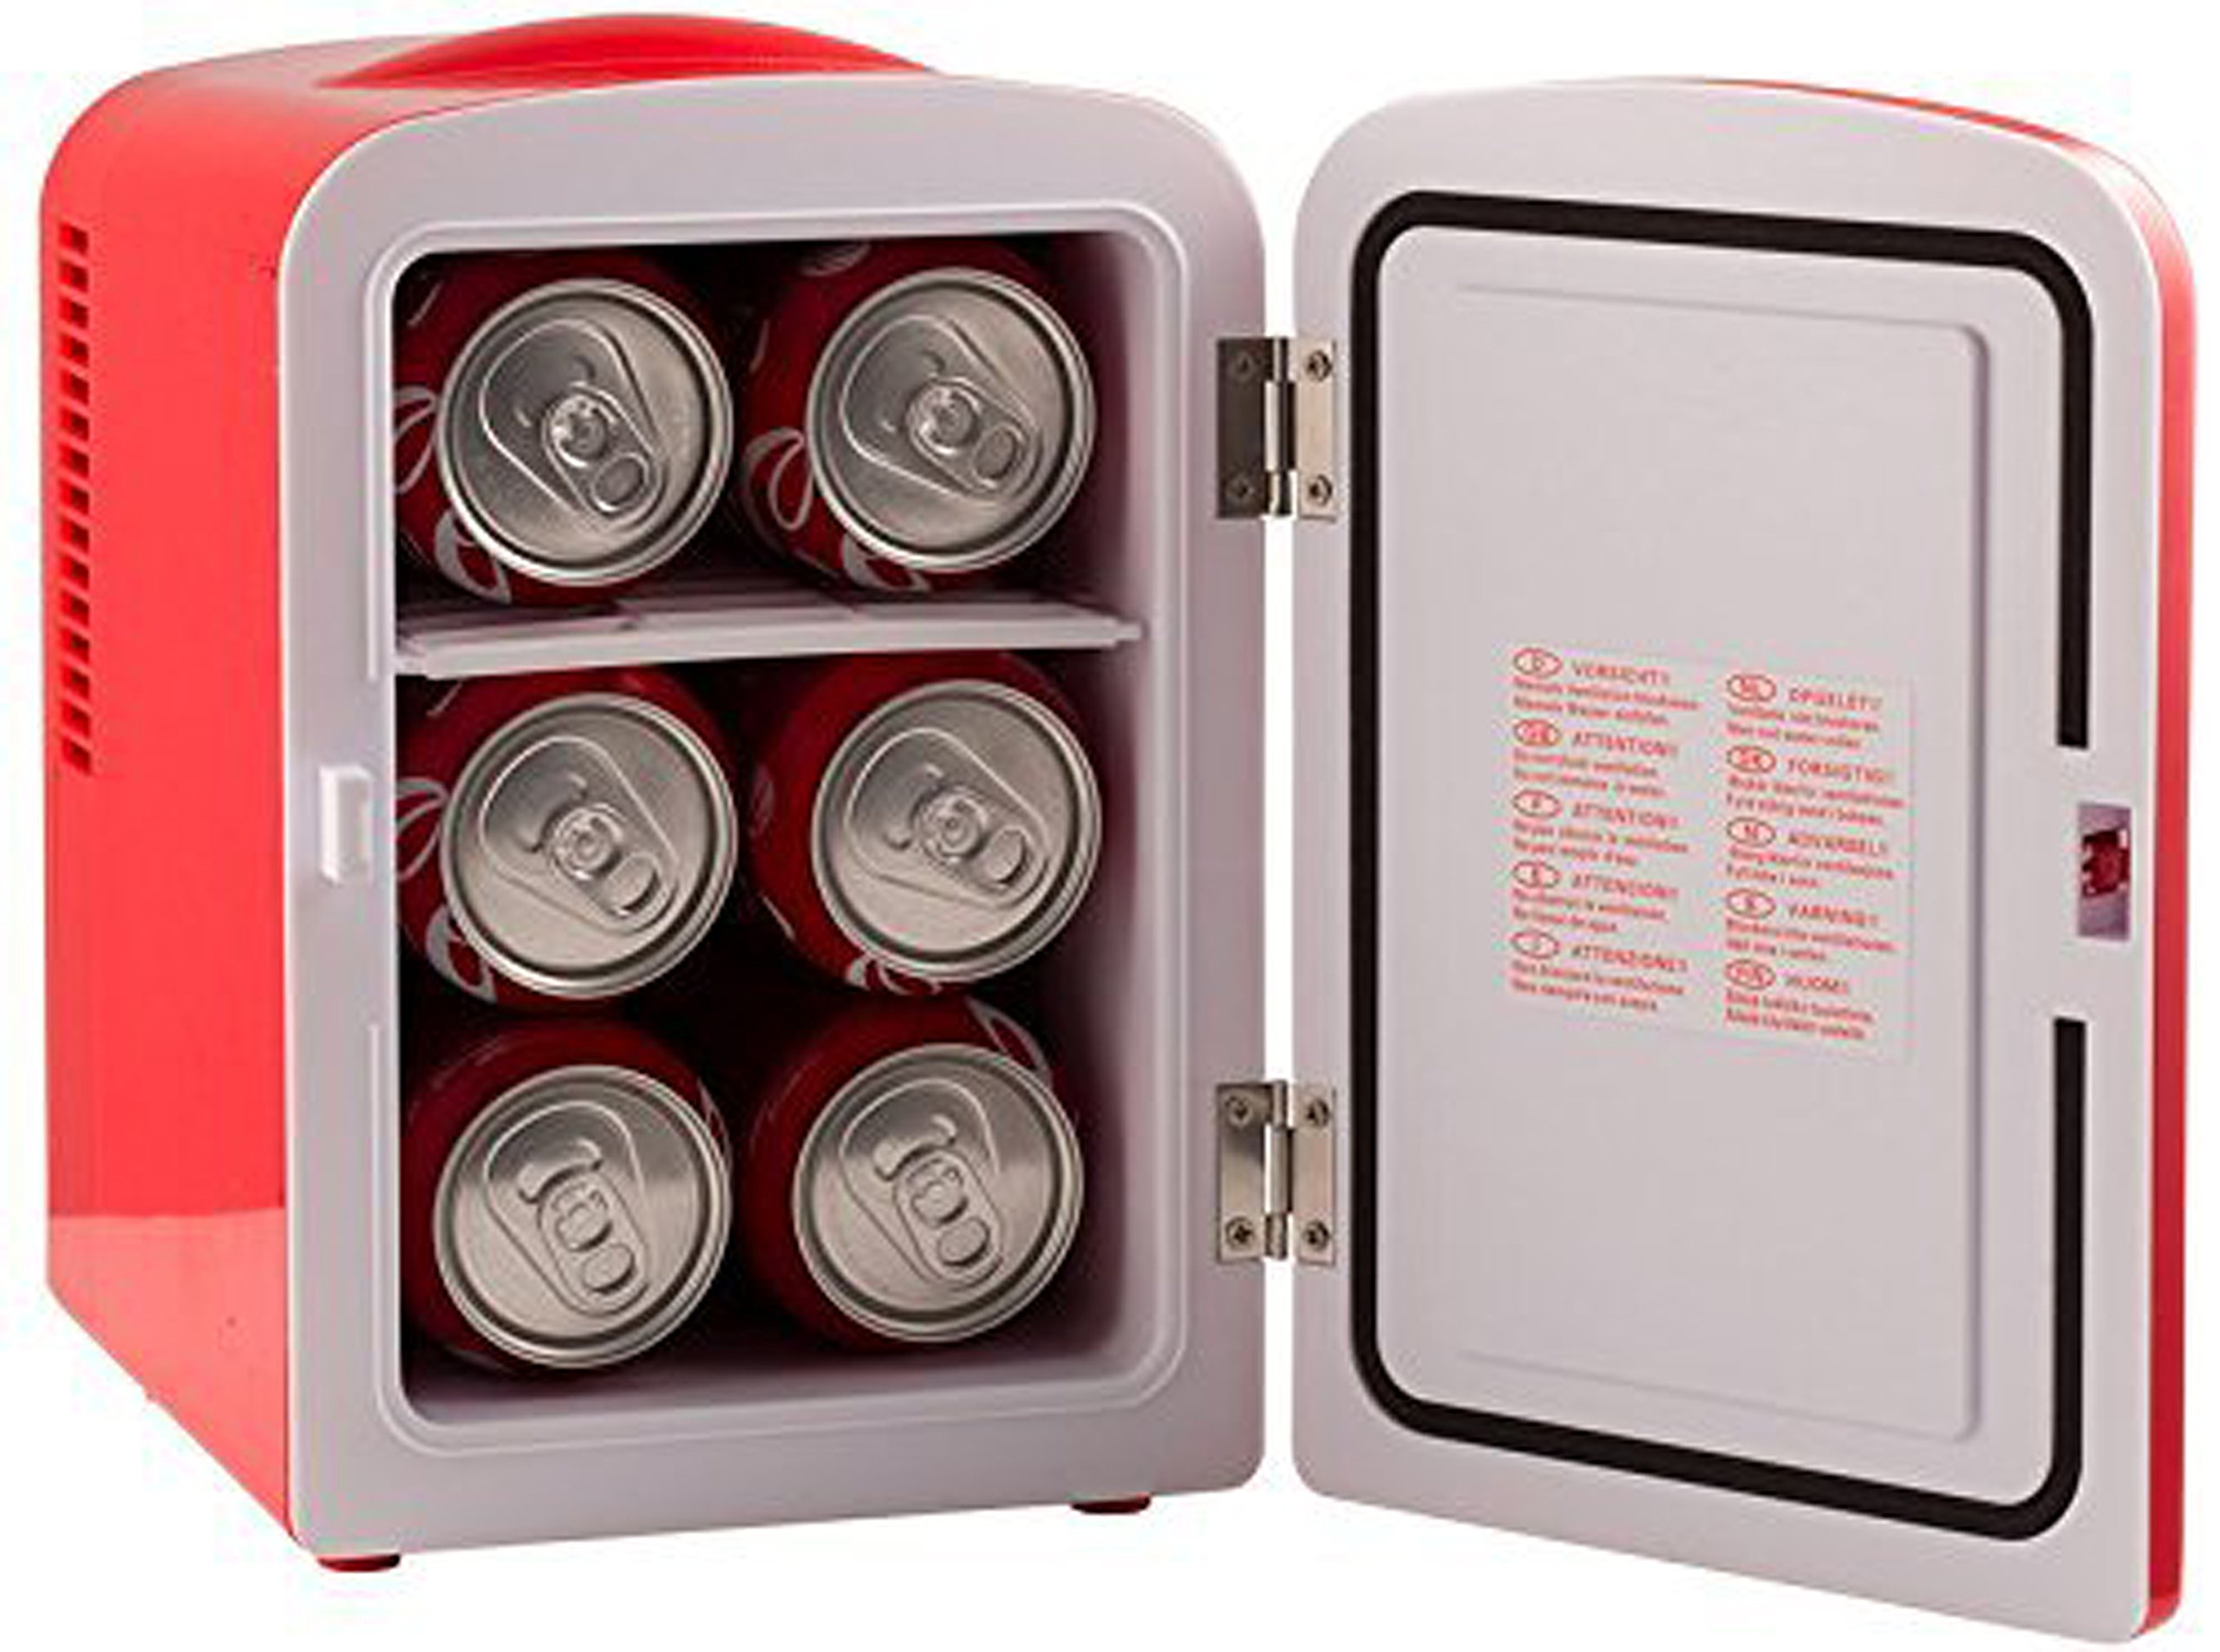 Gourmia GMF600 Thermoelectric Mini Fridge Cooler and Warmer - 4 Liter/ 6 Can - For Home,Office, Car, Dorm or Boat - Compact & Portable - AC & DC Power Cords - Red by Gourmia (Image #9)